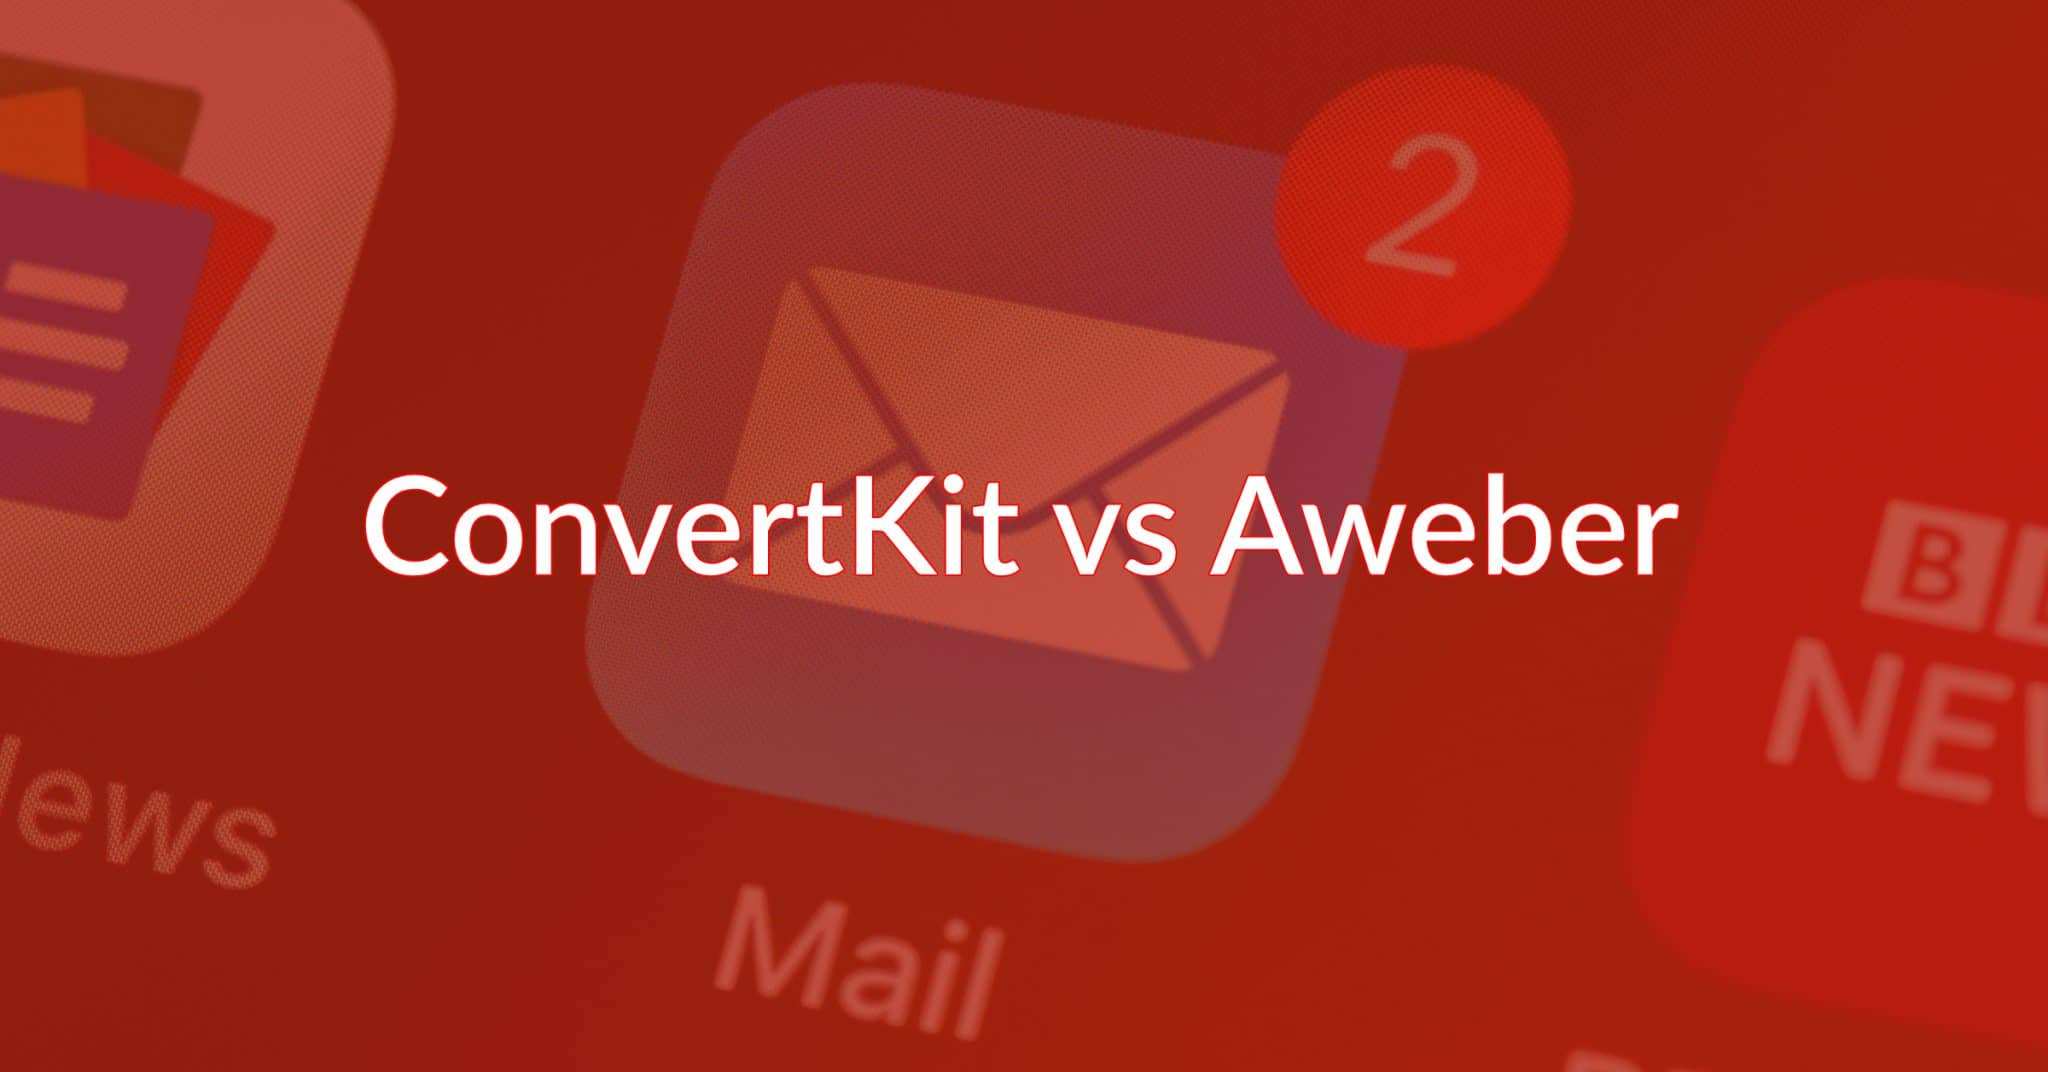 ConvertKit vs Aweber: Which Email Software Performs Best?